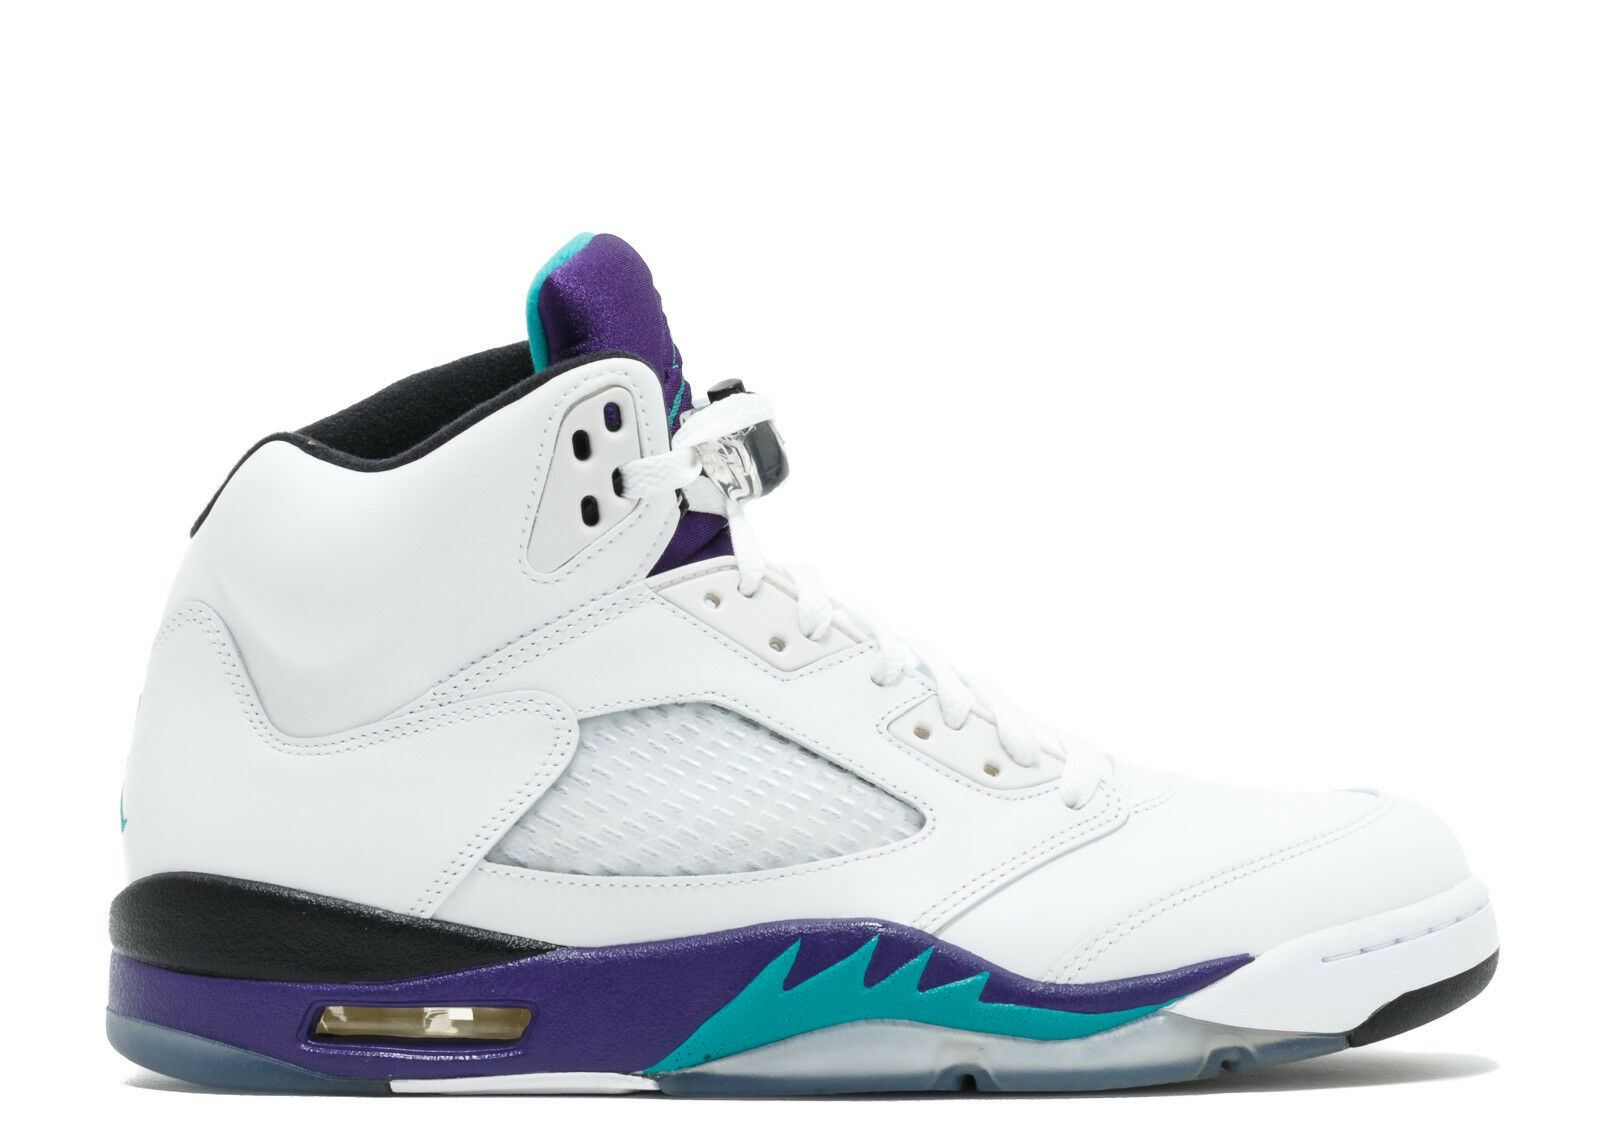 2018 Nike Air Jordan 5 V Retro Grape White Purple Teal size 13.136027-108.